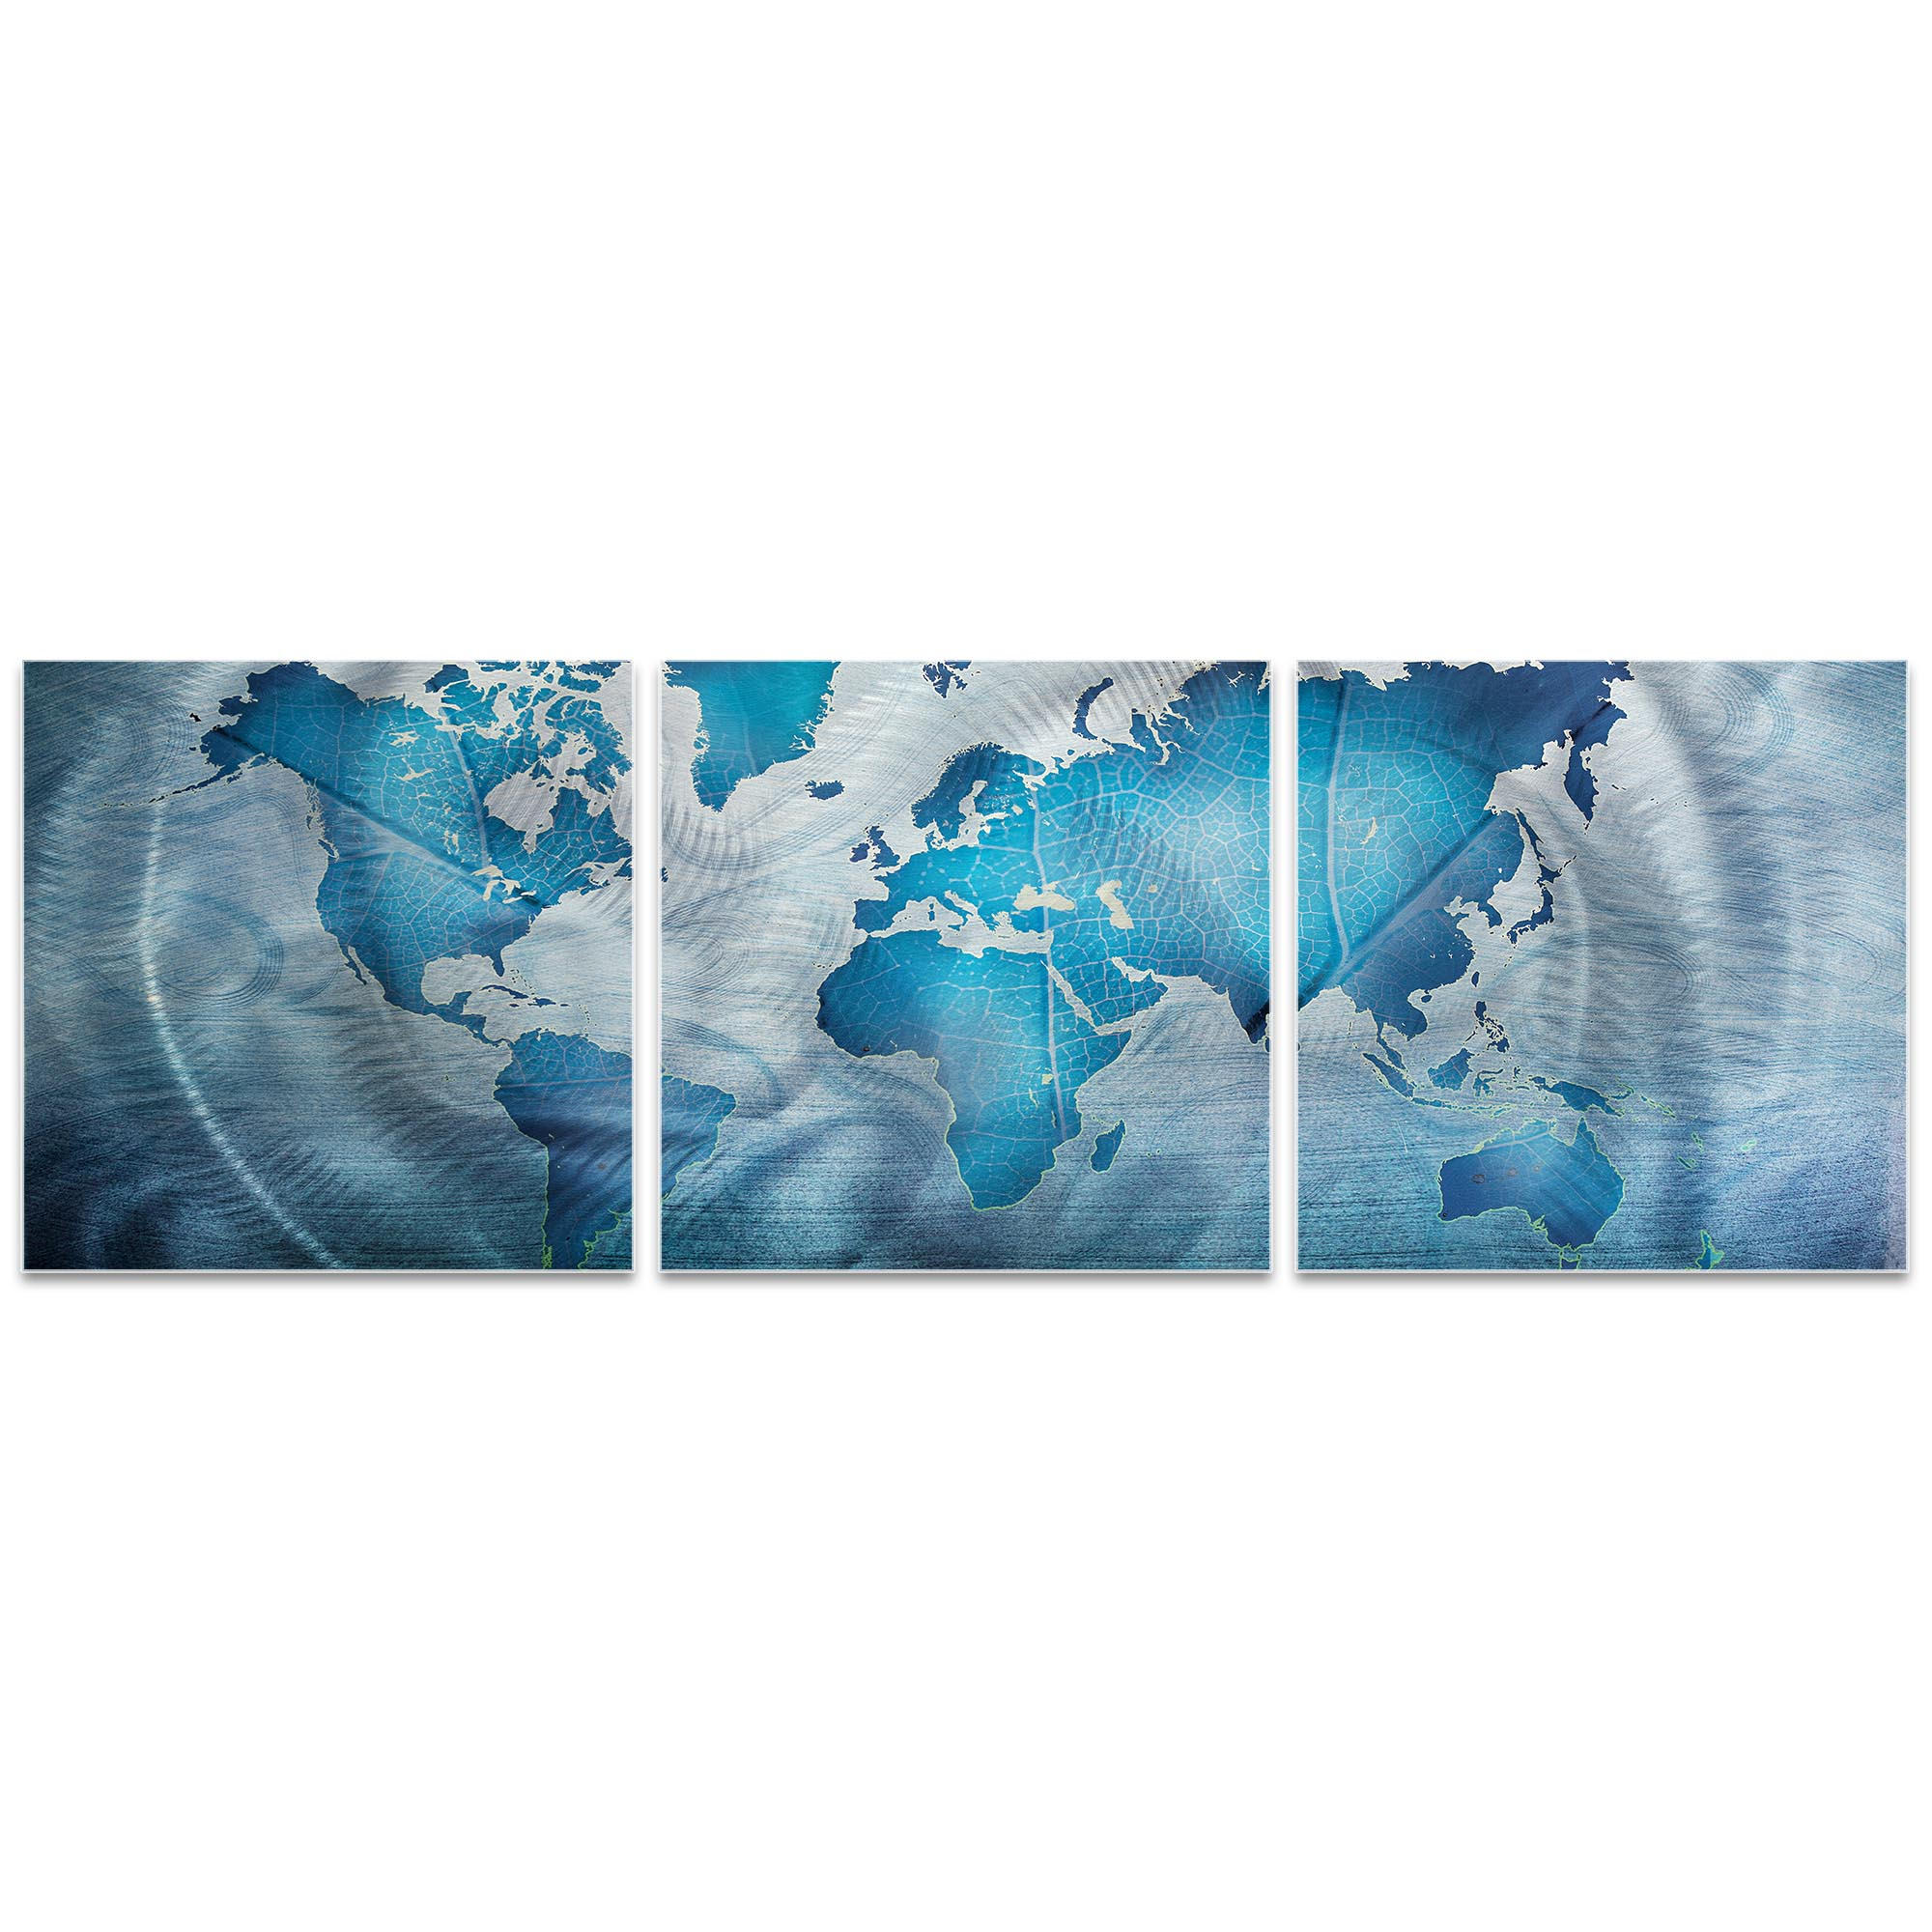 Land and Sea Triptych 38x12in. Metal or Acrylic Contemporary Decor - Image 2